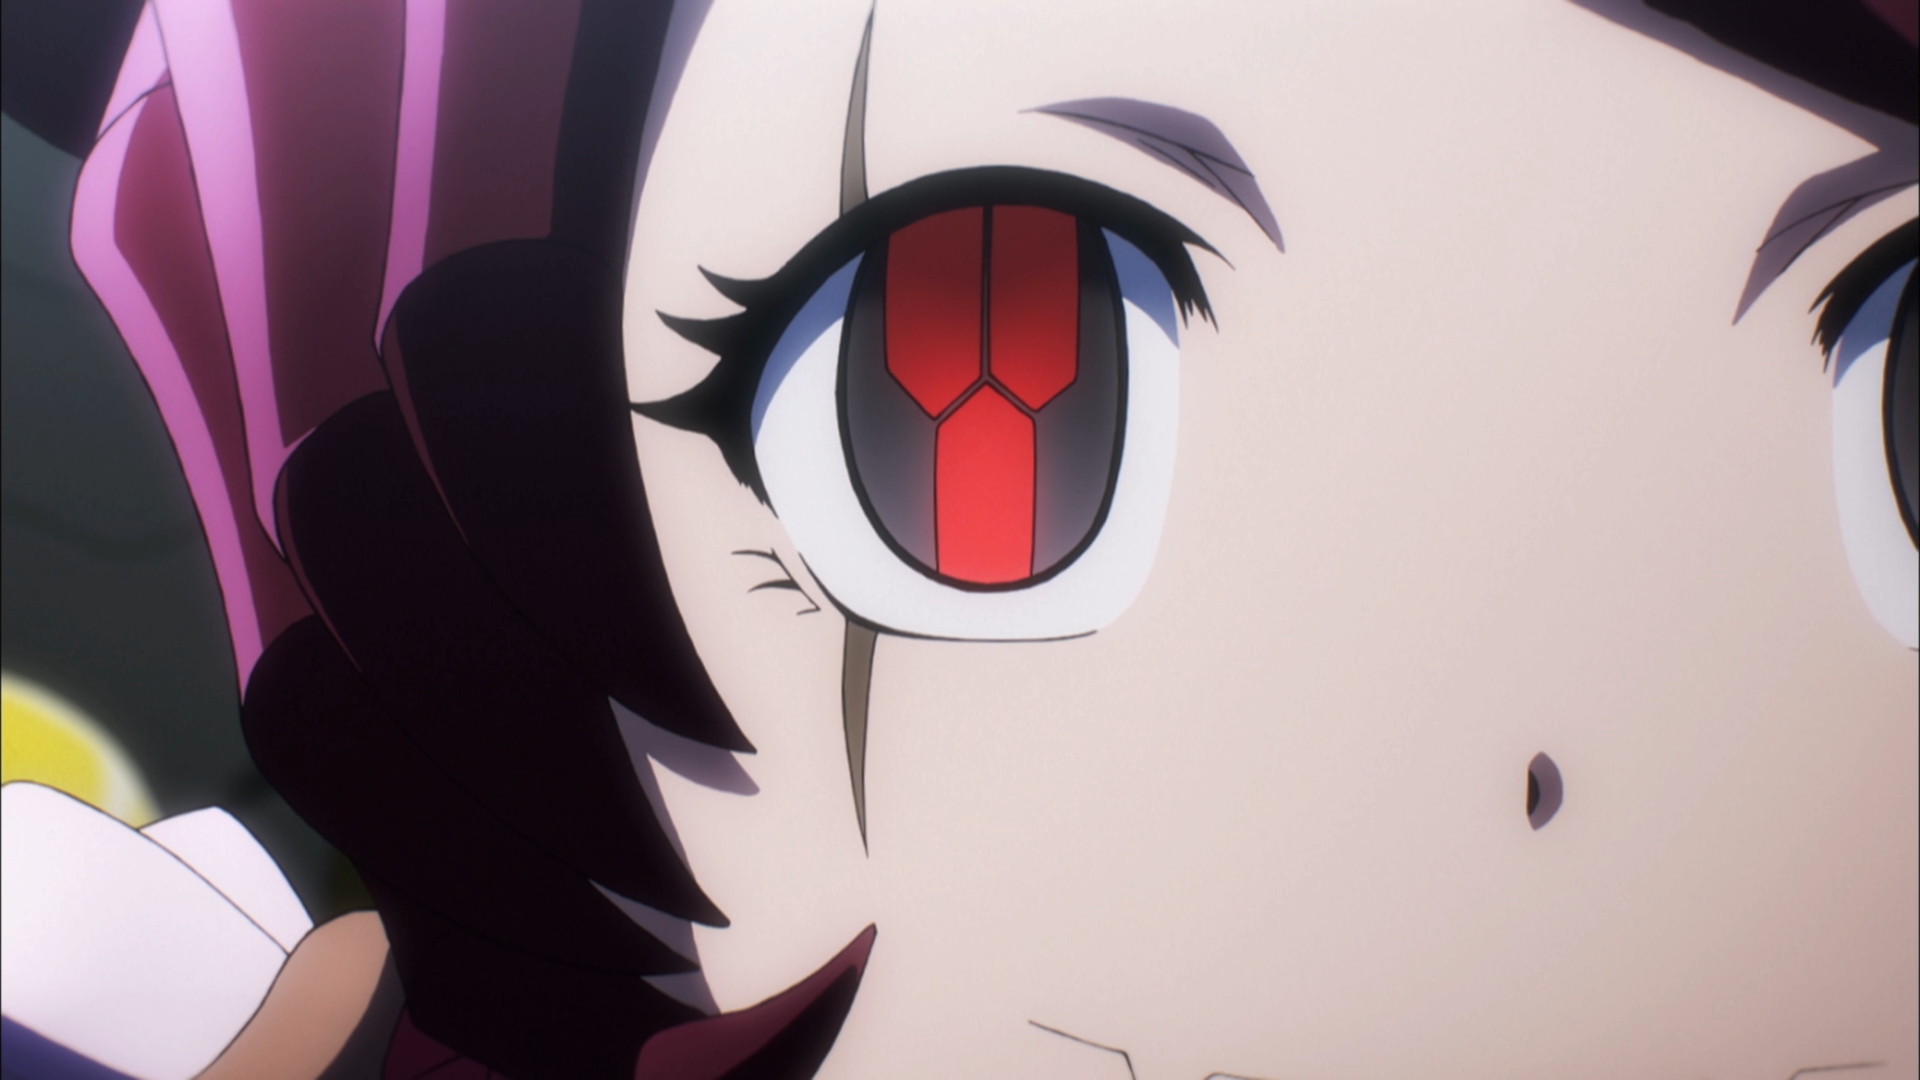 OVERLORD III 01 (WEB-DL 1920x1080 x264 AAC Rus + Jap).mkv_snapshot_02.12.png